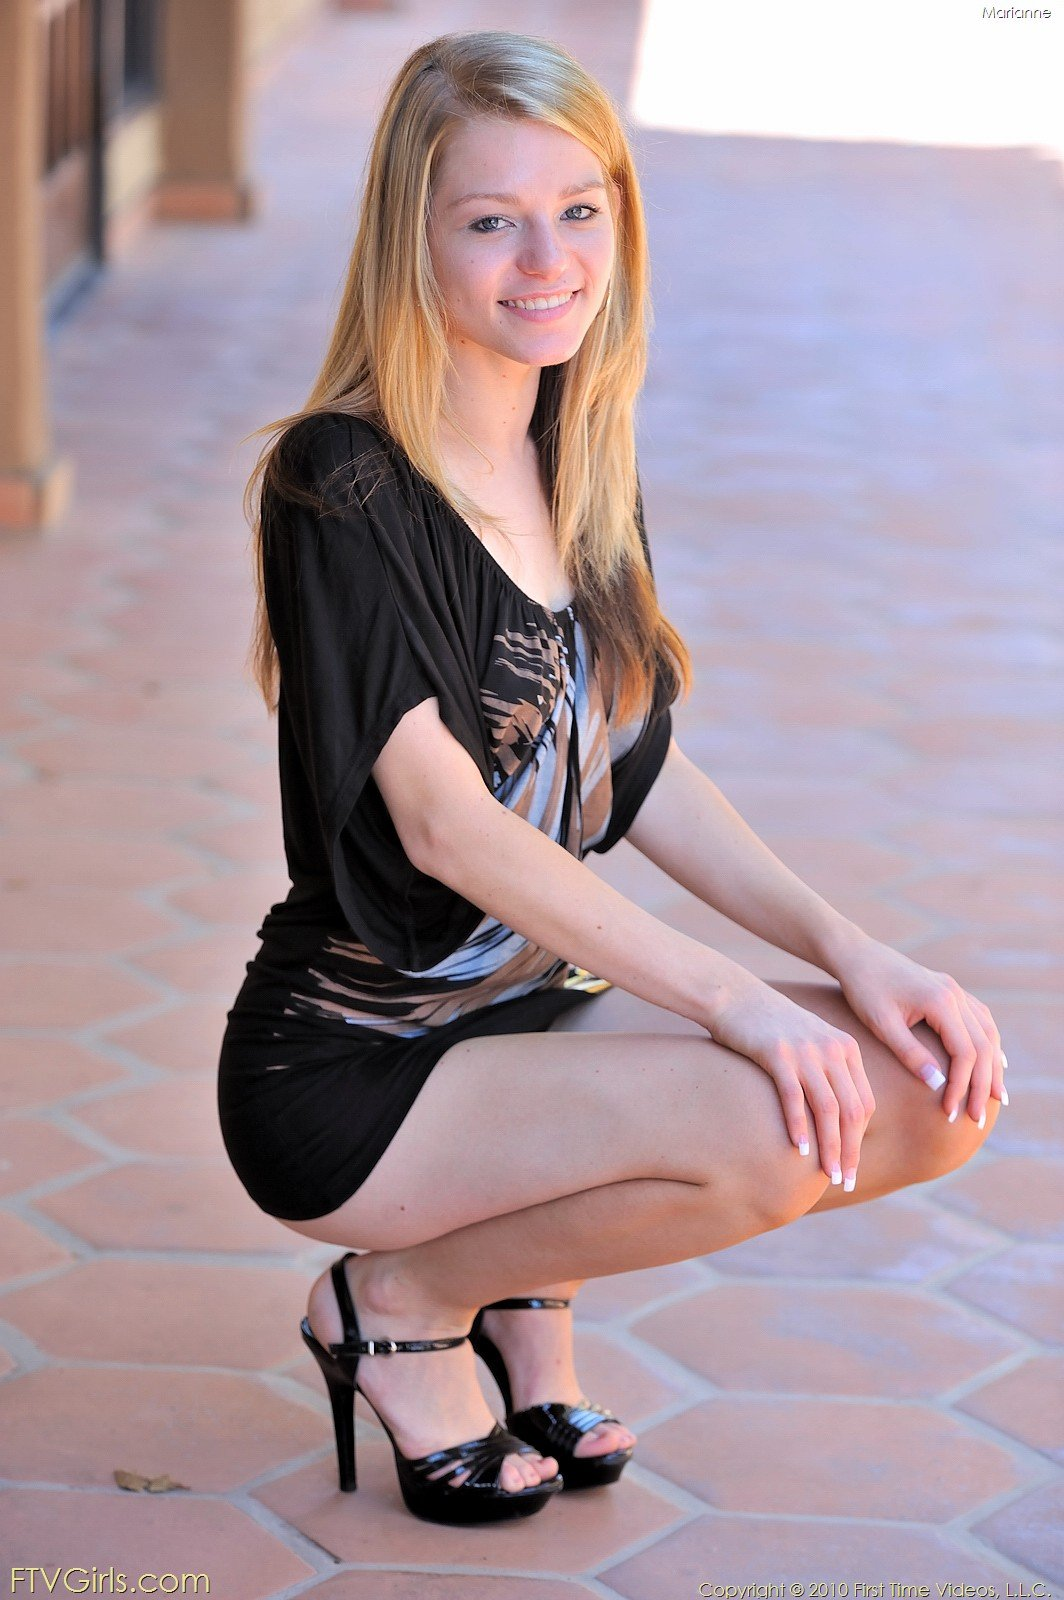 Pristine teen with long legs shows off her enviable body